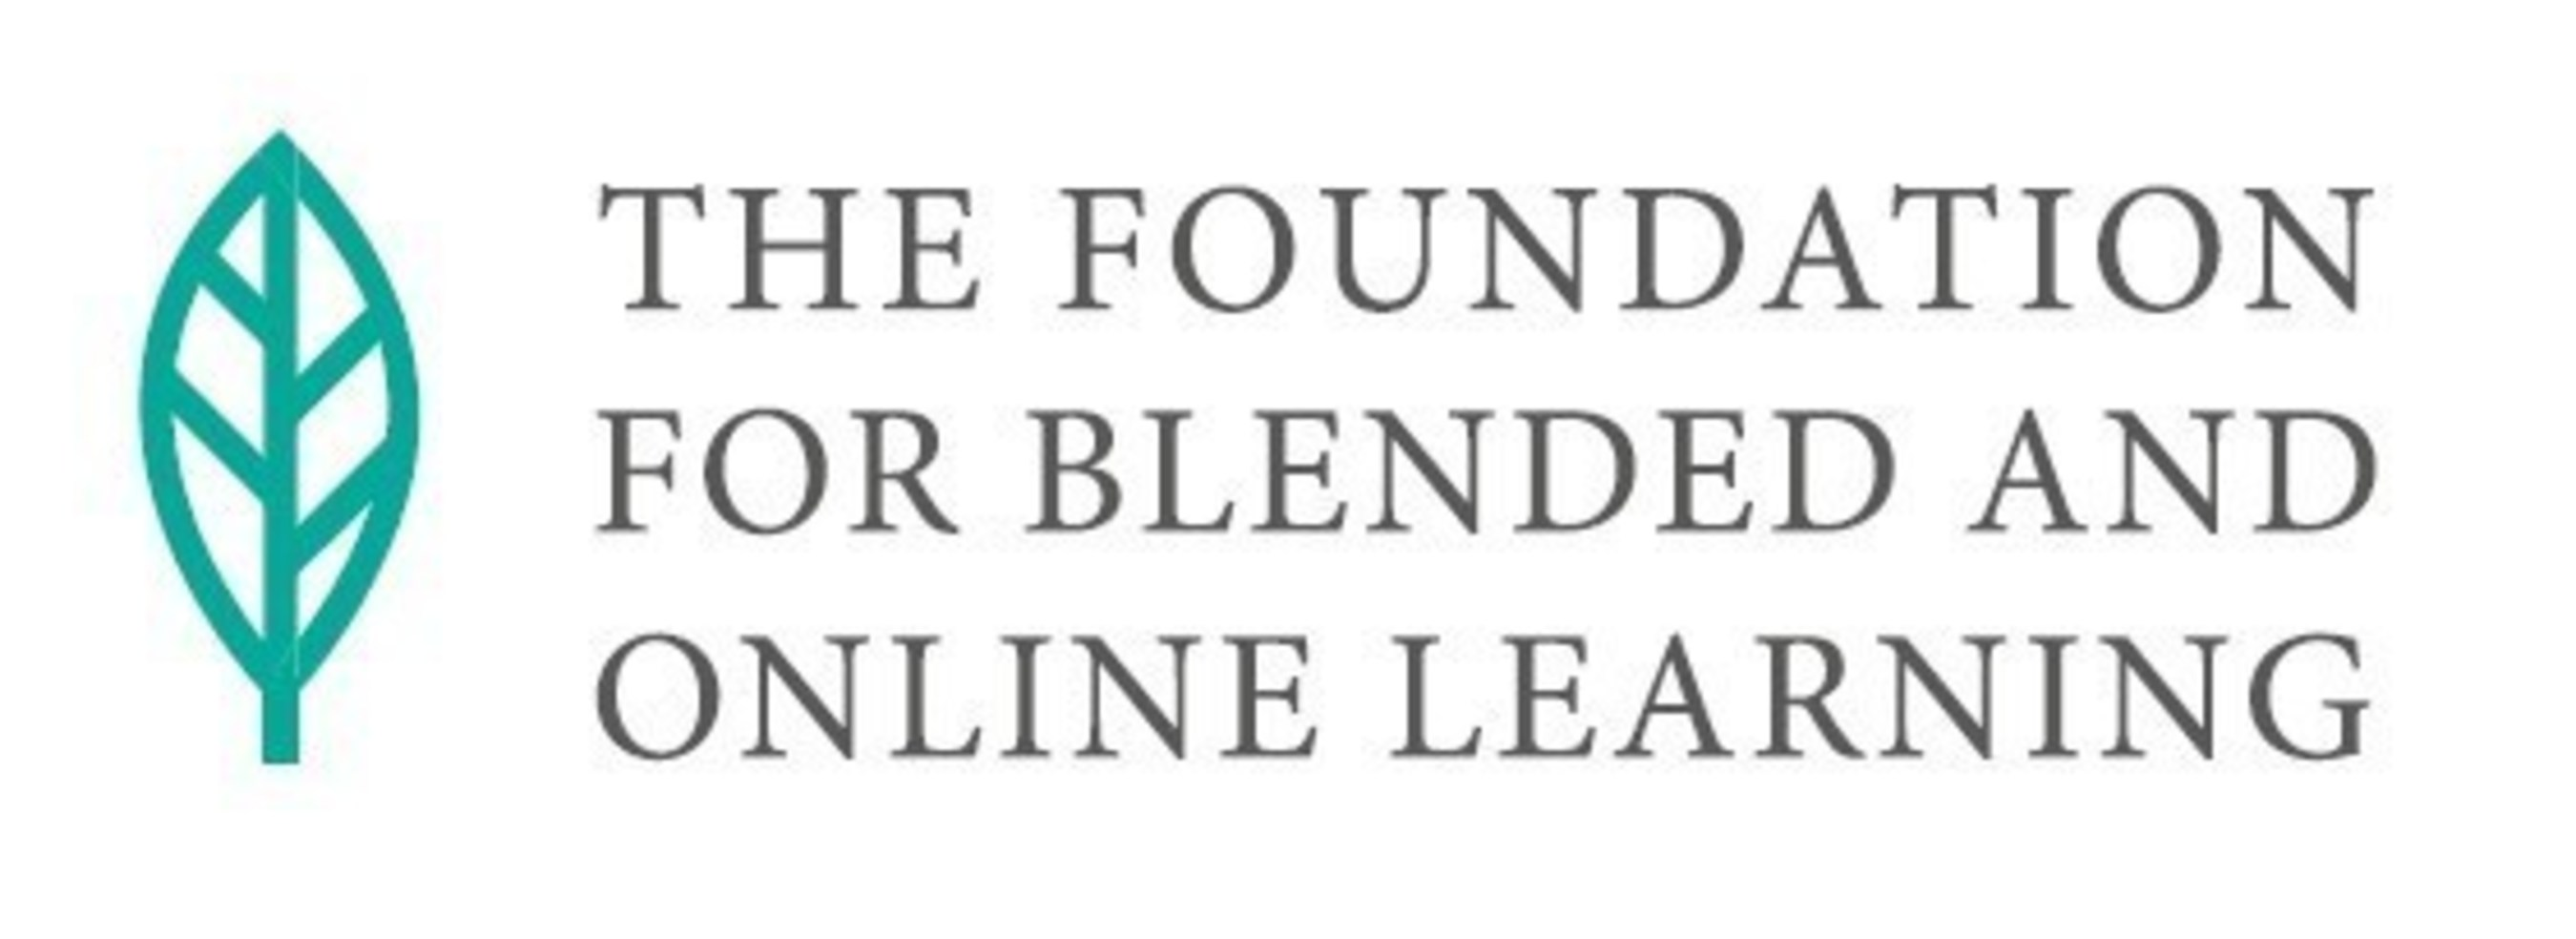 The Foundation for Blended and Online Learning is an independent charitable education organization. The mission of the foundation is to empower students through personalized learning by advancing the availability and quality of blended and online learning opportunities and outcomes.